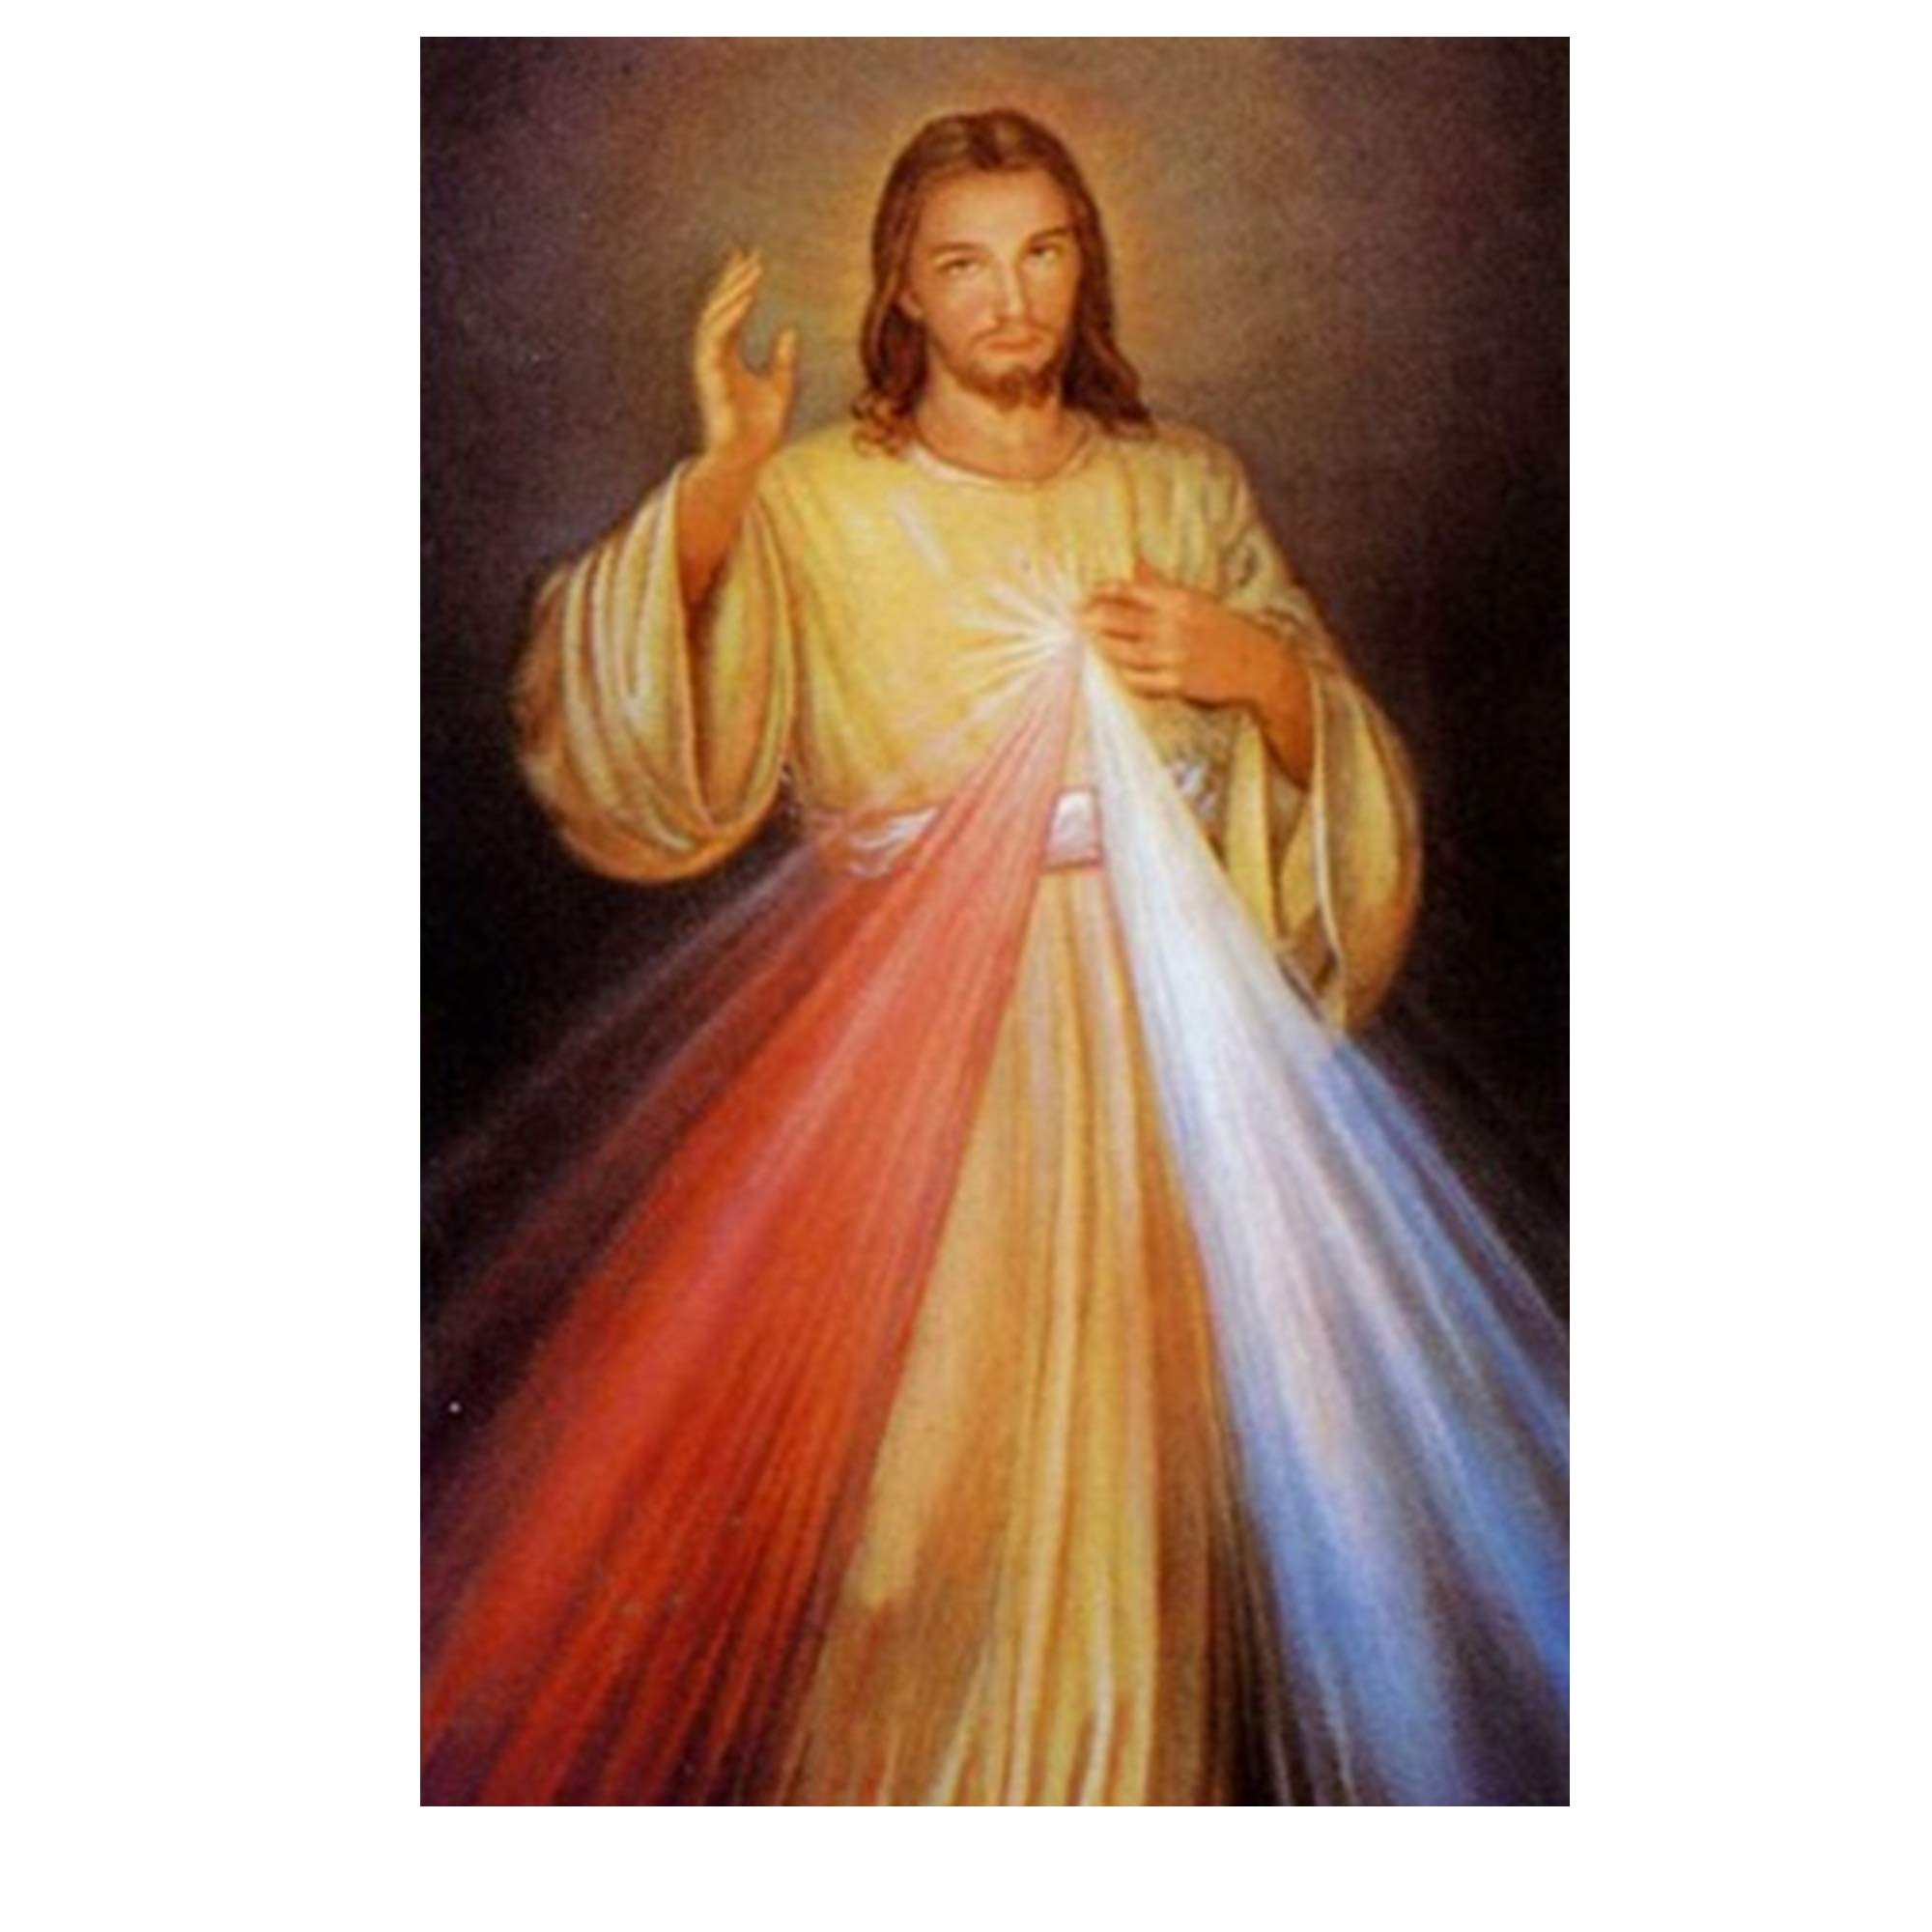 Divine Mercy Jesus I Trust in You Laminated Holy Card Blessed by His Holiness Pope Francis